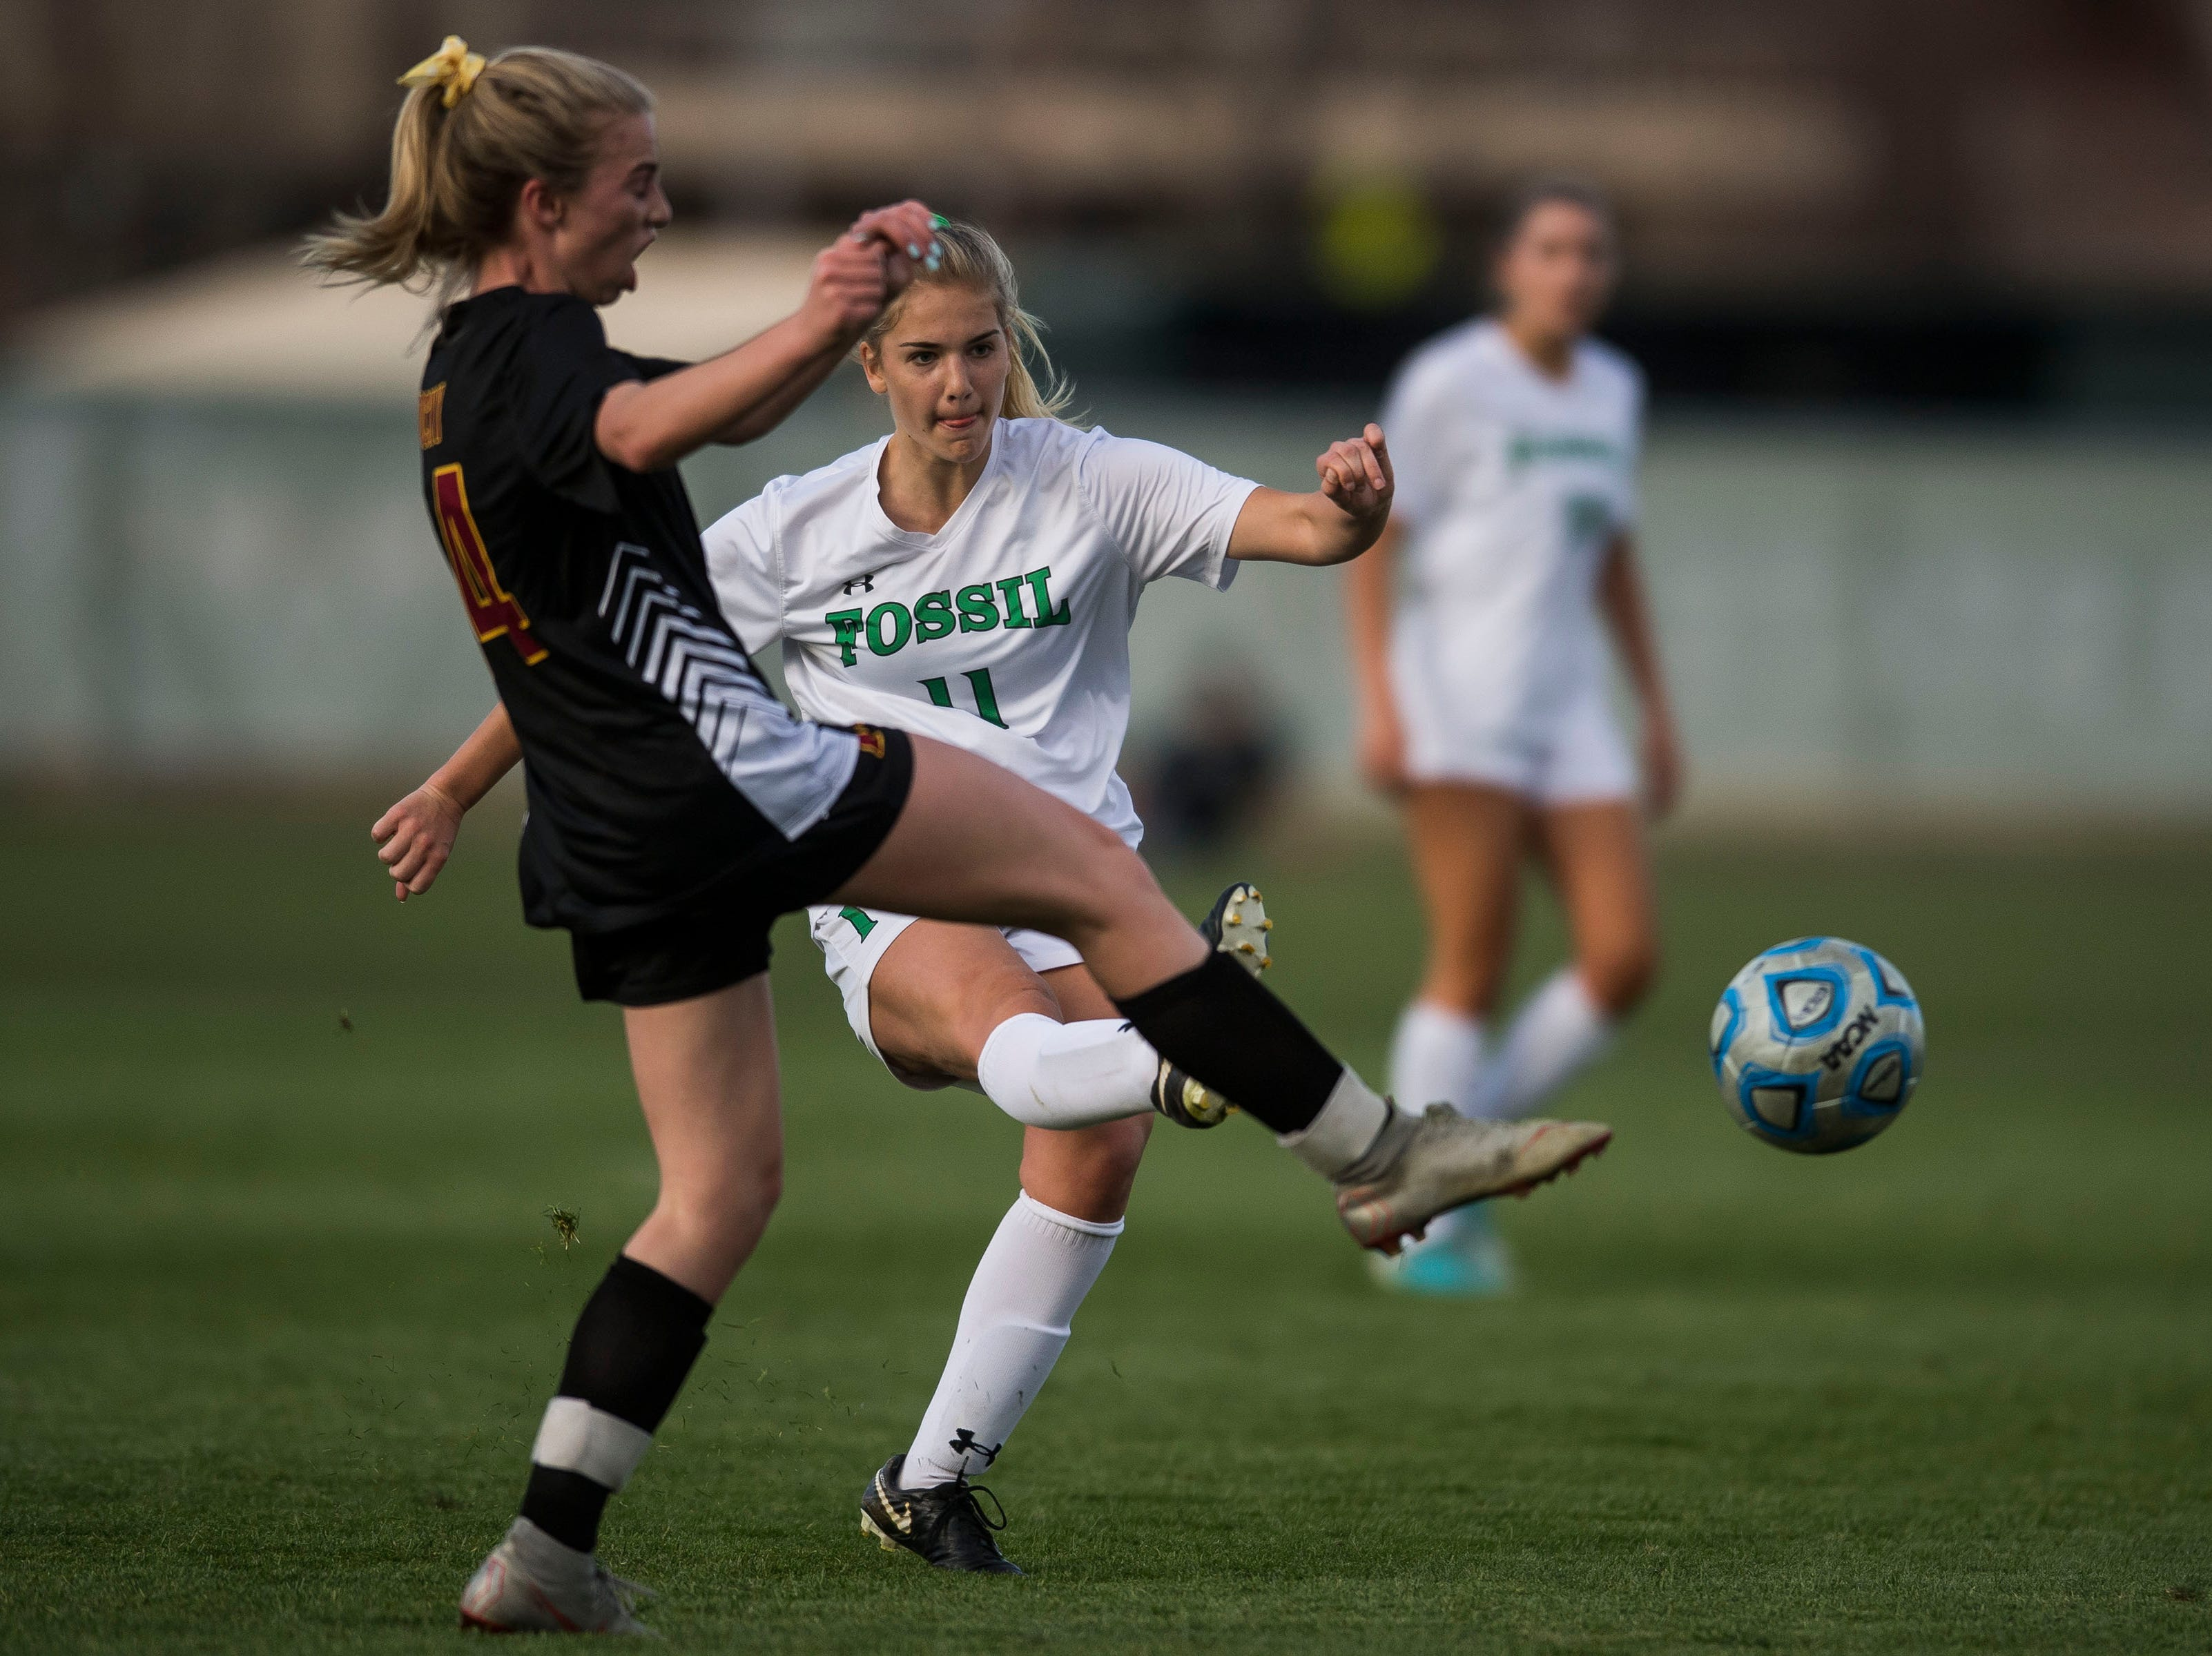 Fossil Ridge High School senior Emily Drysdale (11) kicks past Rocky Mountain High School sophomore Mya Johnson (14) on Friday, April 4, 2019, at Colorado State University's soccer field in Fort Collins, Colo.